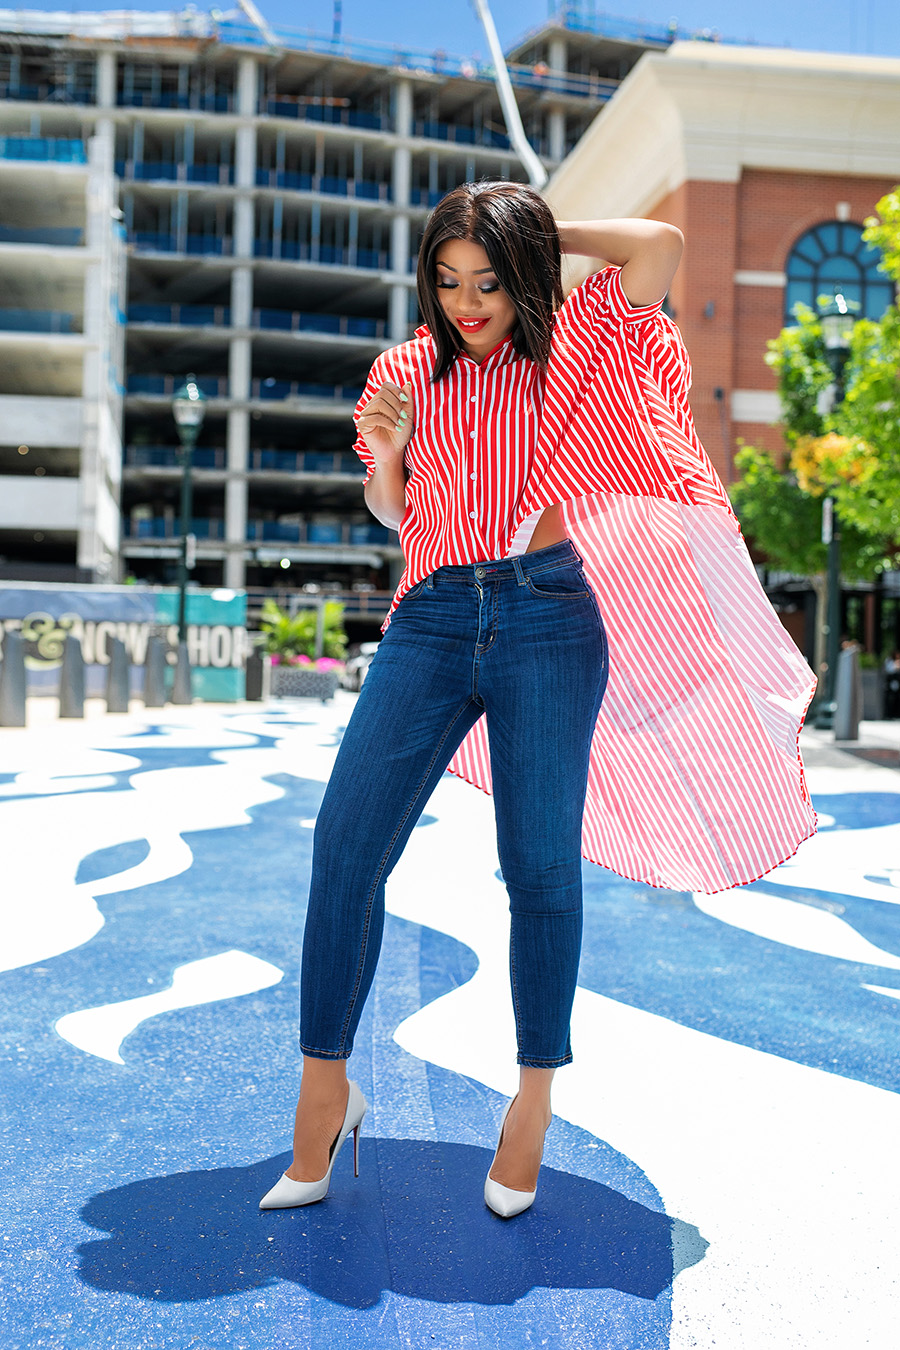 July fourth style in red and white long summer stripe shirt with blue jeans in the city